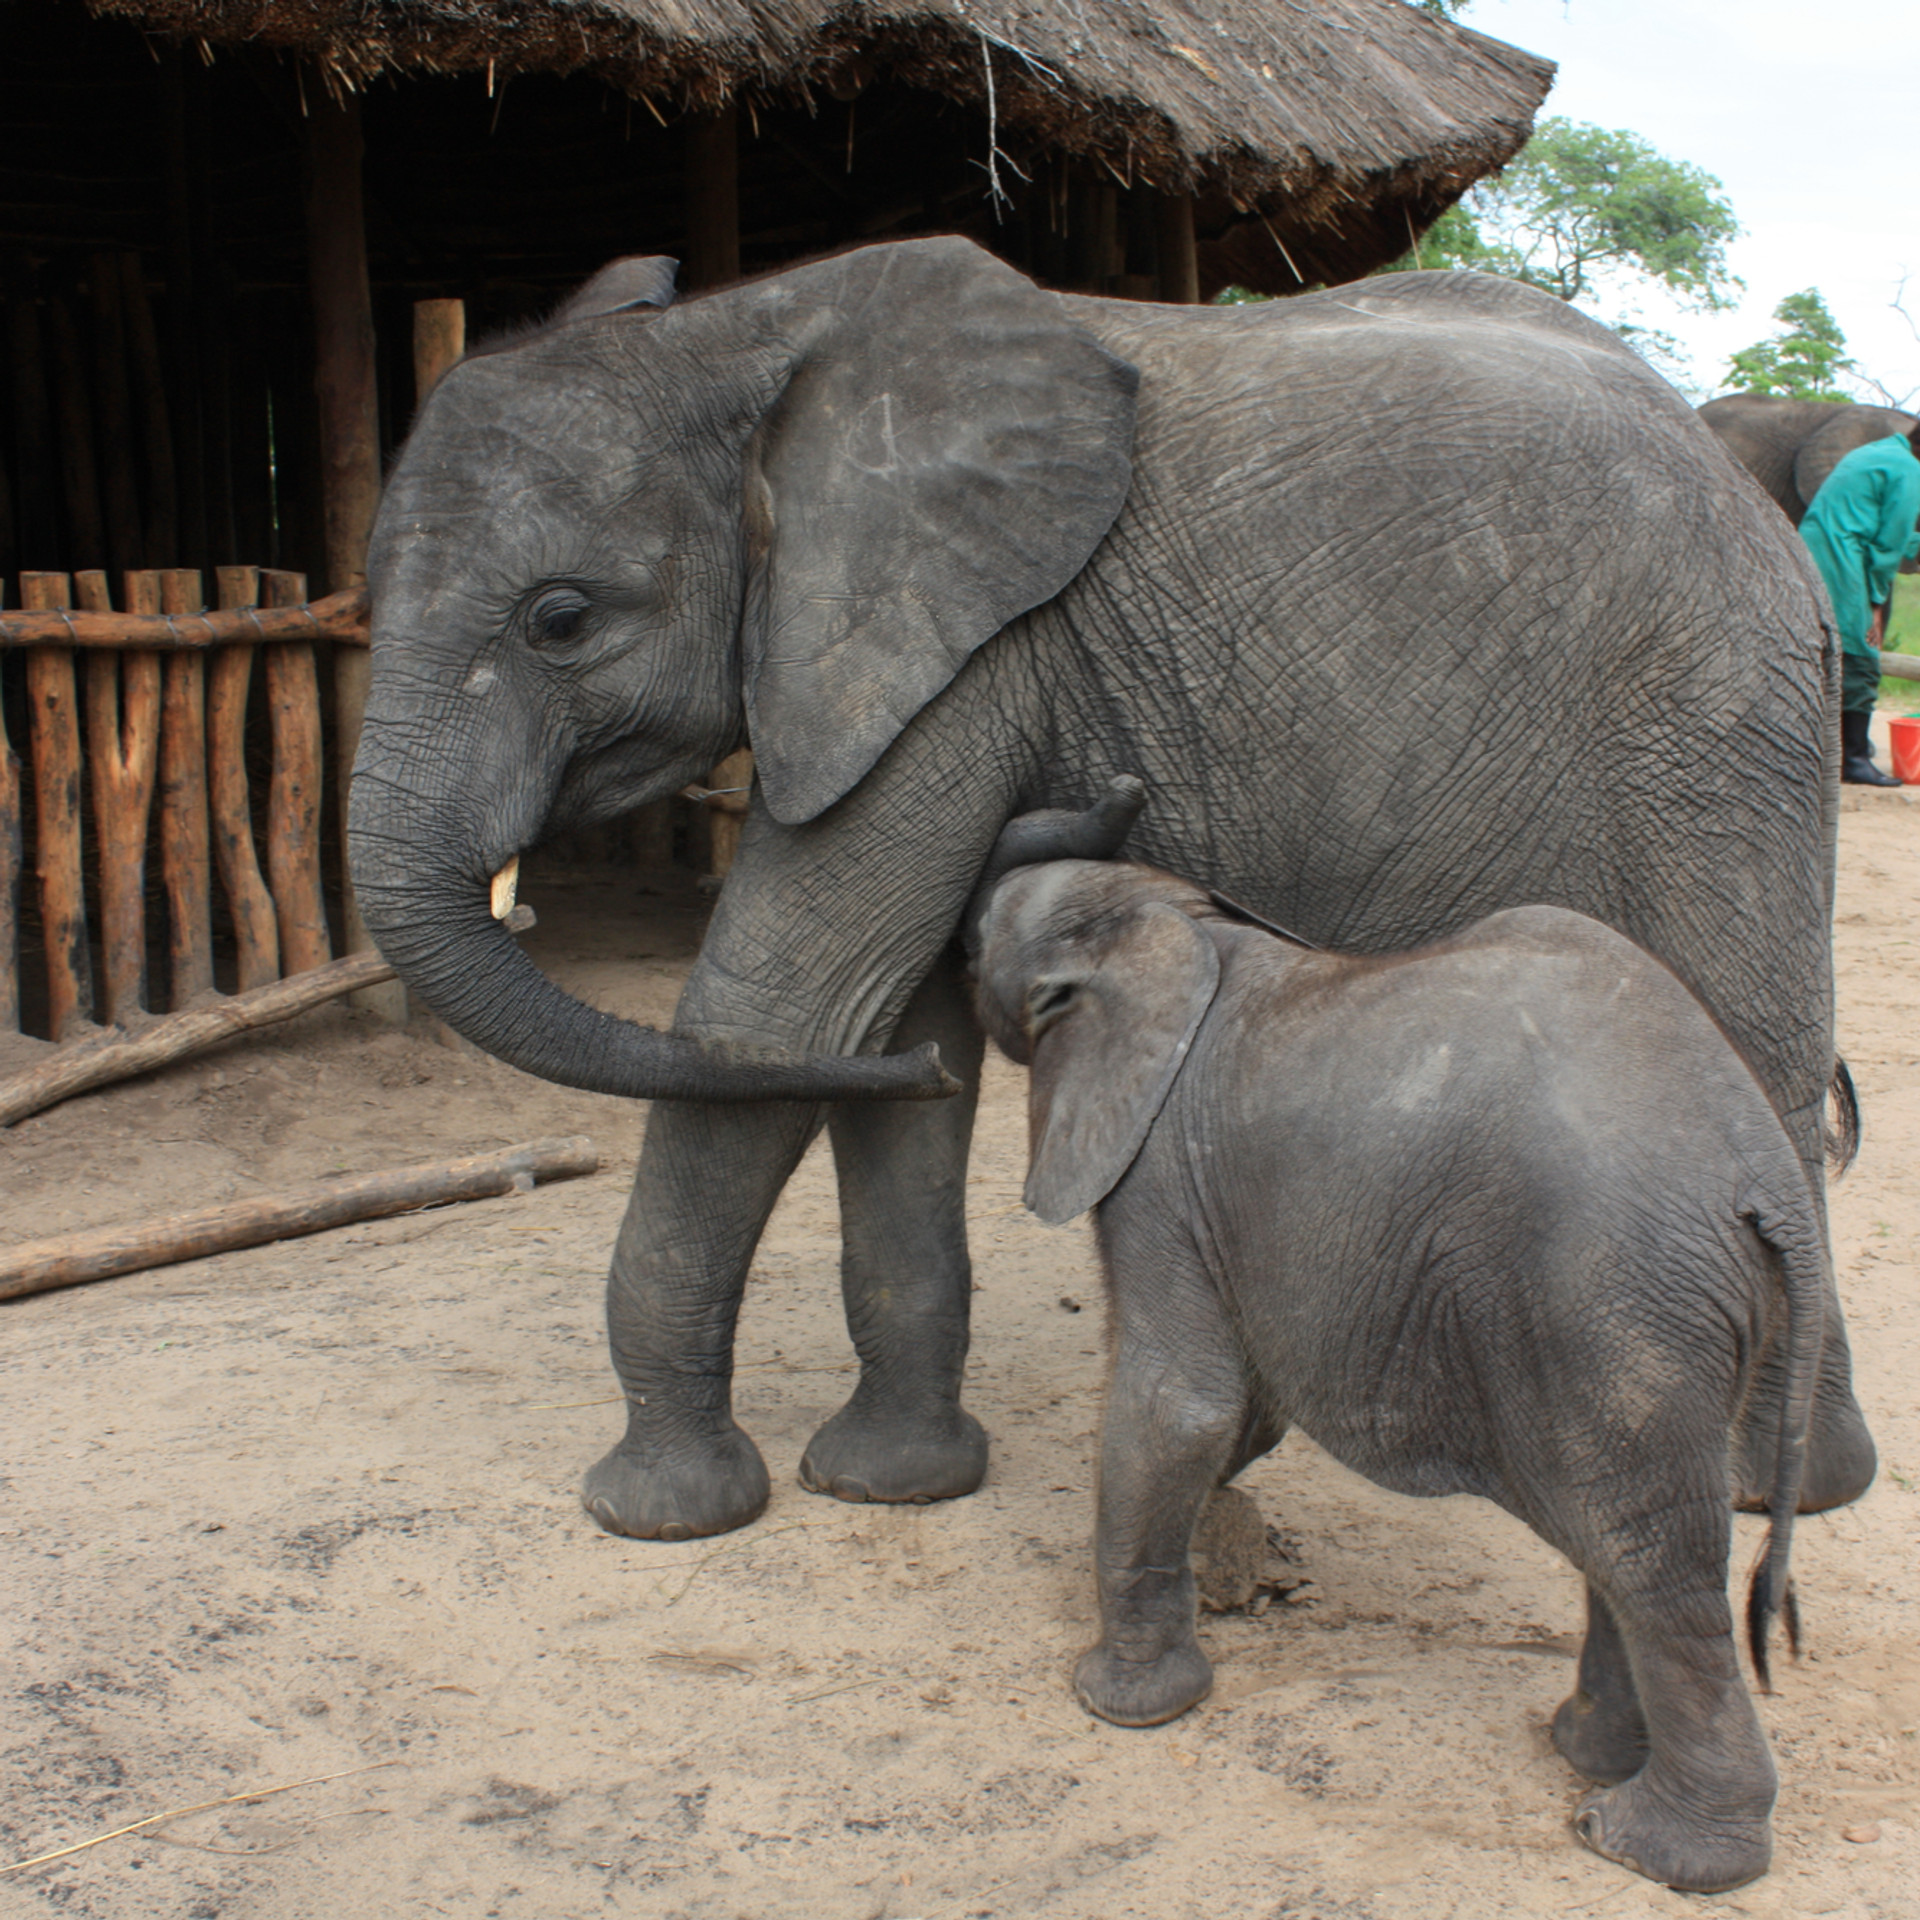 To her delight in 2010, 3 month old Rufunsa joined the herd. Chamilandu was beside herself with excitement and would not let the little one out of her sight. Despite only being only 4.5 years old she started allowing the young calf to comfort suckle, and was instrumental in his adjustment into the herd, supporting him as he overcame the loss of his mother and herd. This was the start of a very intense relationship between the two that no other orphan could compete with, even those smaller and younger than Rufunsa.